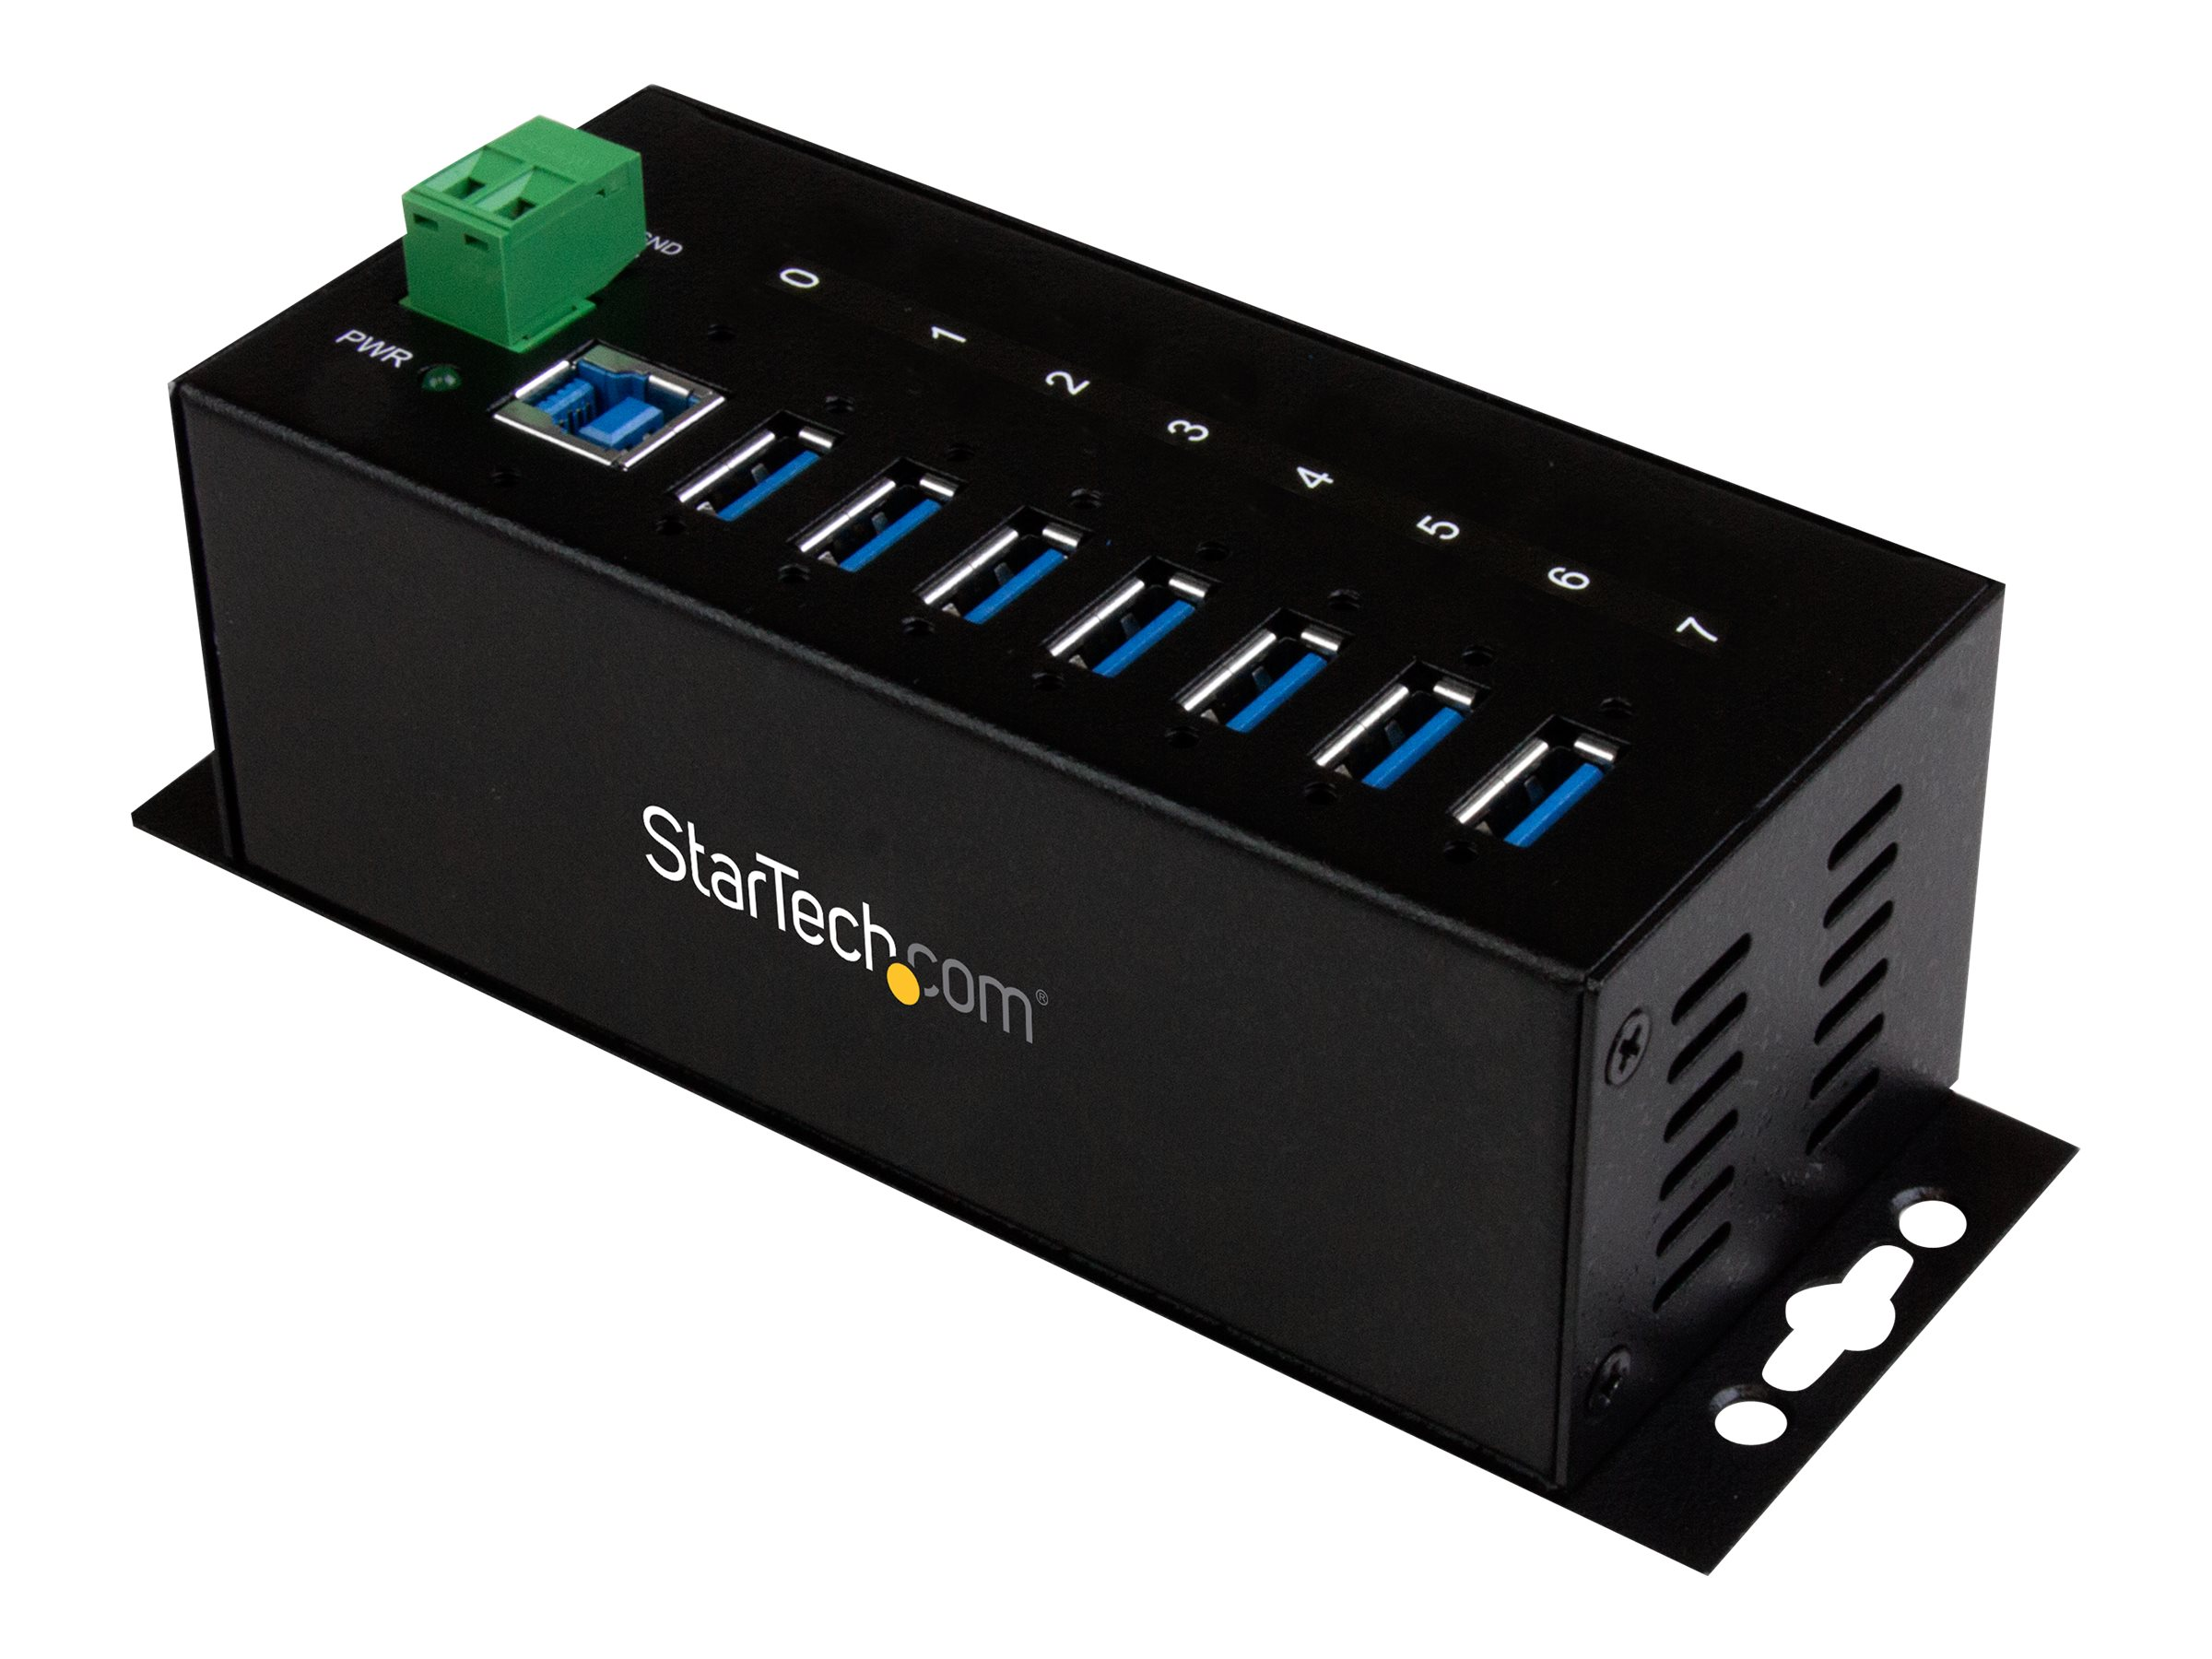 StarTech.com 7-Port Industrial Superspeed USB 3.0 Hub Mountable, ST7300USBME